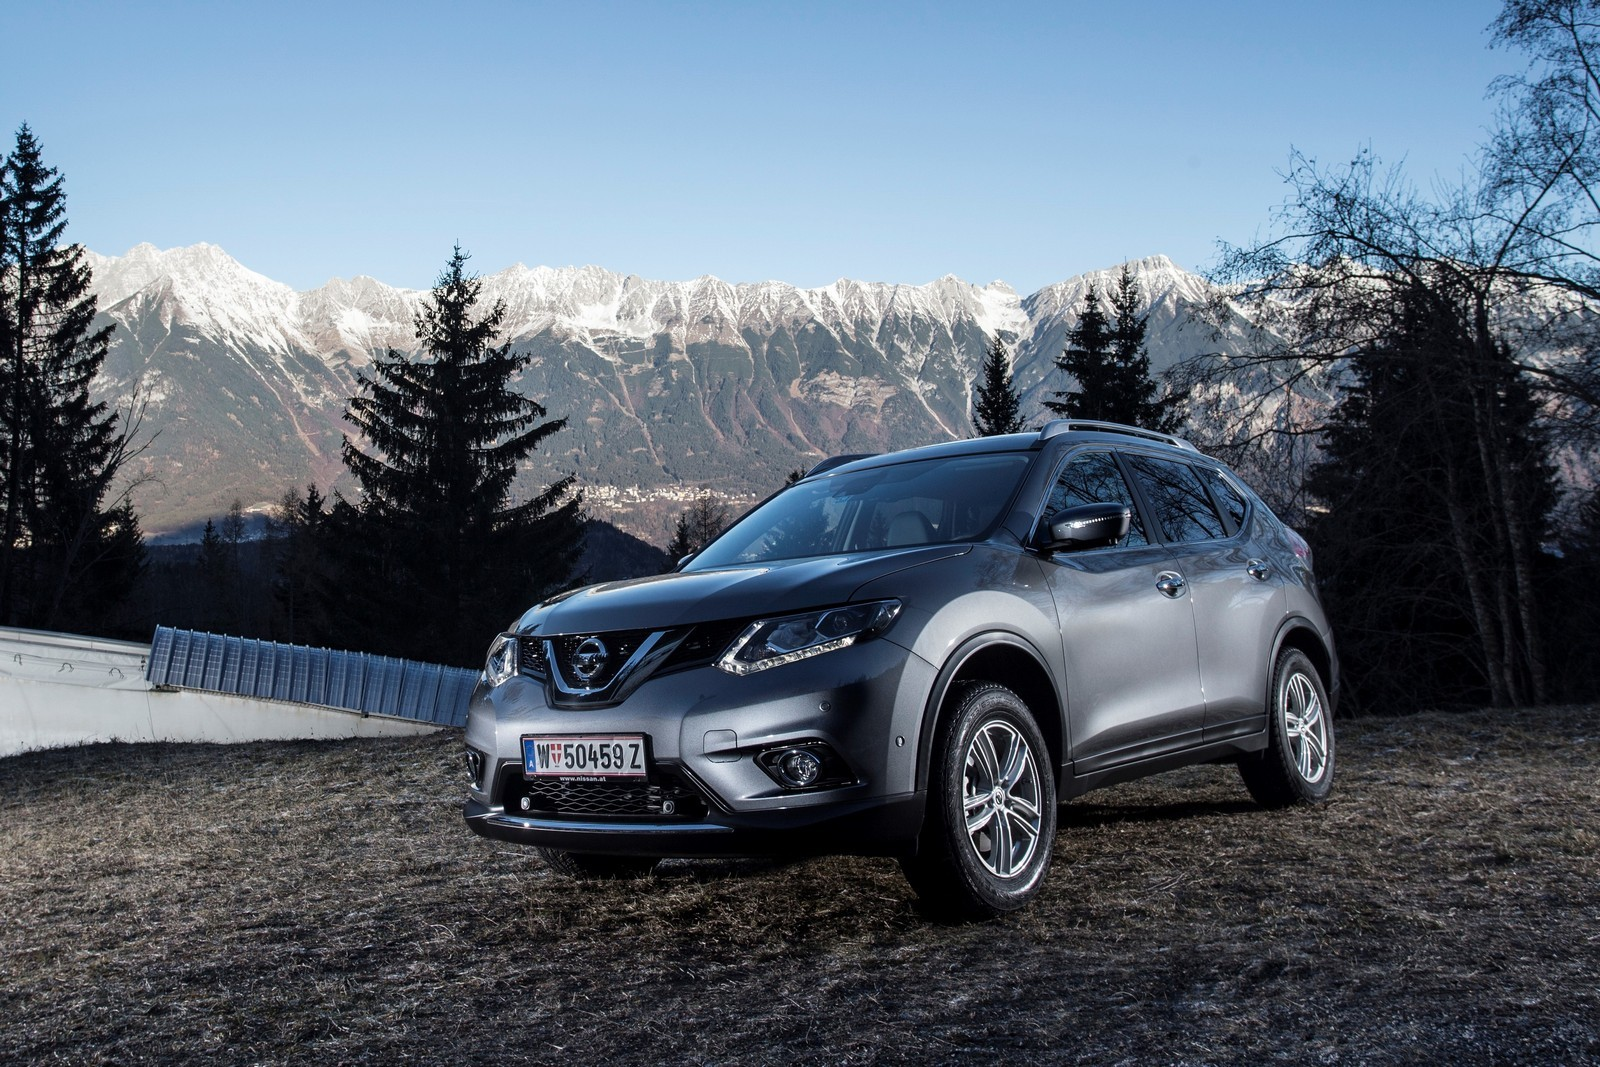 Nissan Unveils World\'s First 7-Seat Bobsled Inspired by Crossovers ...